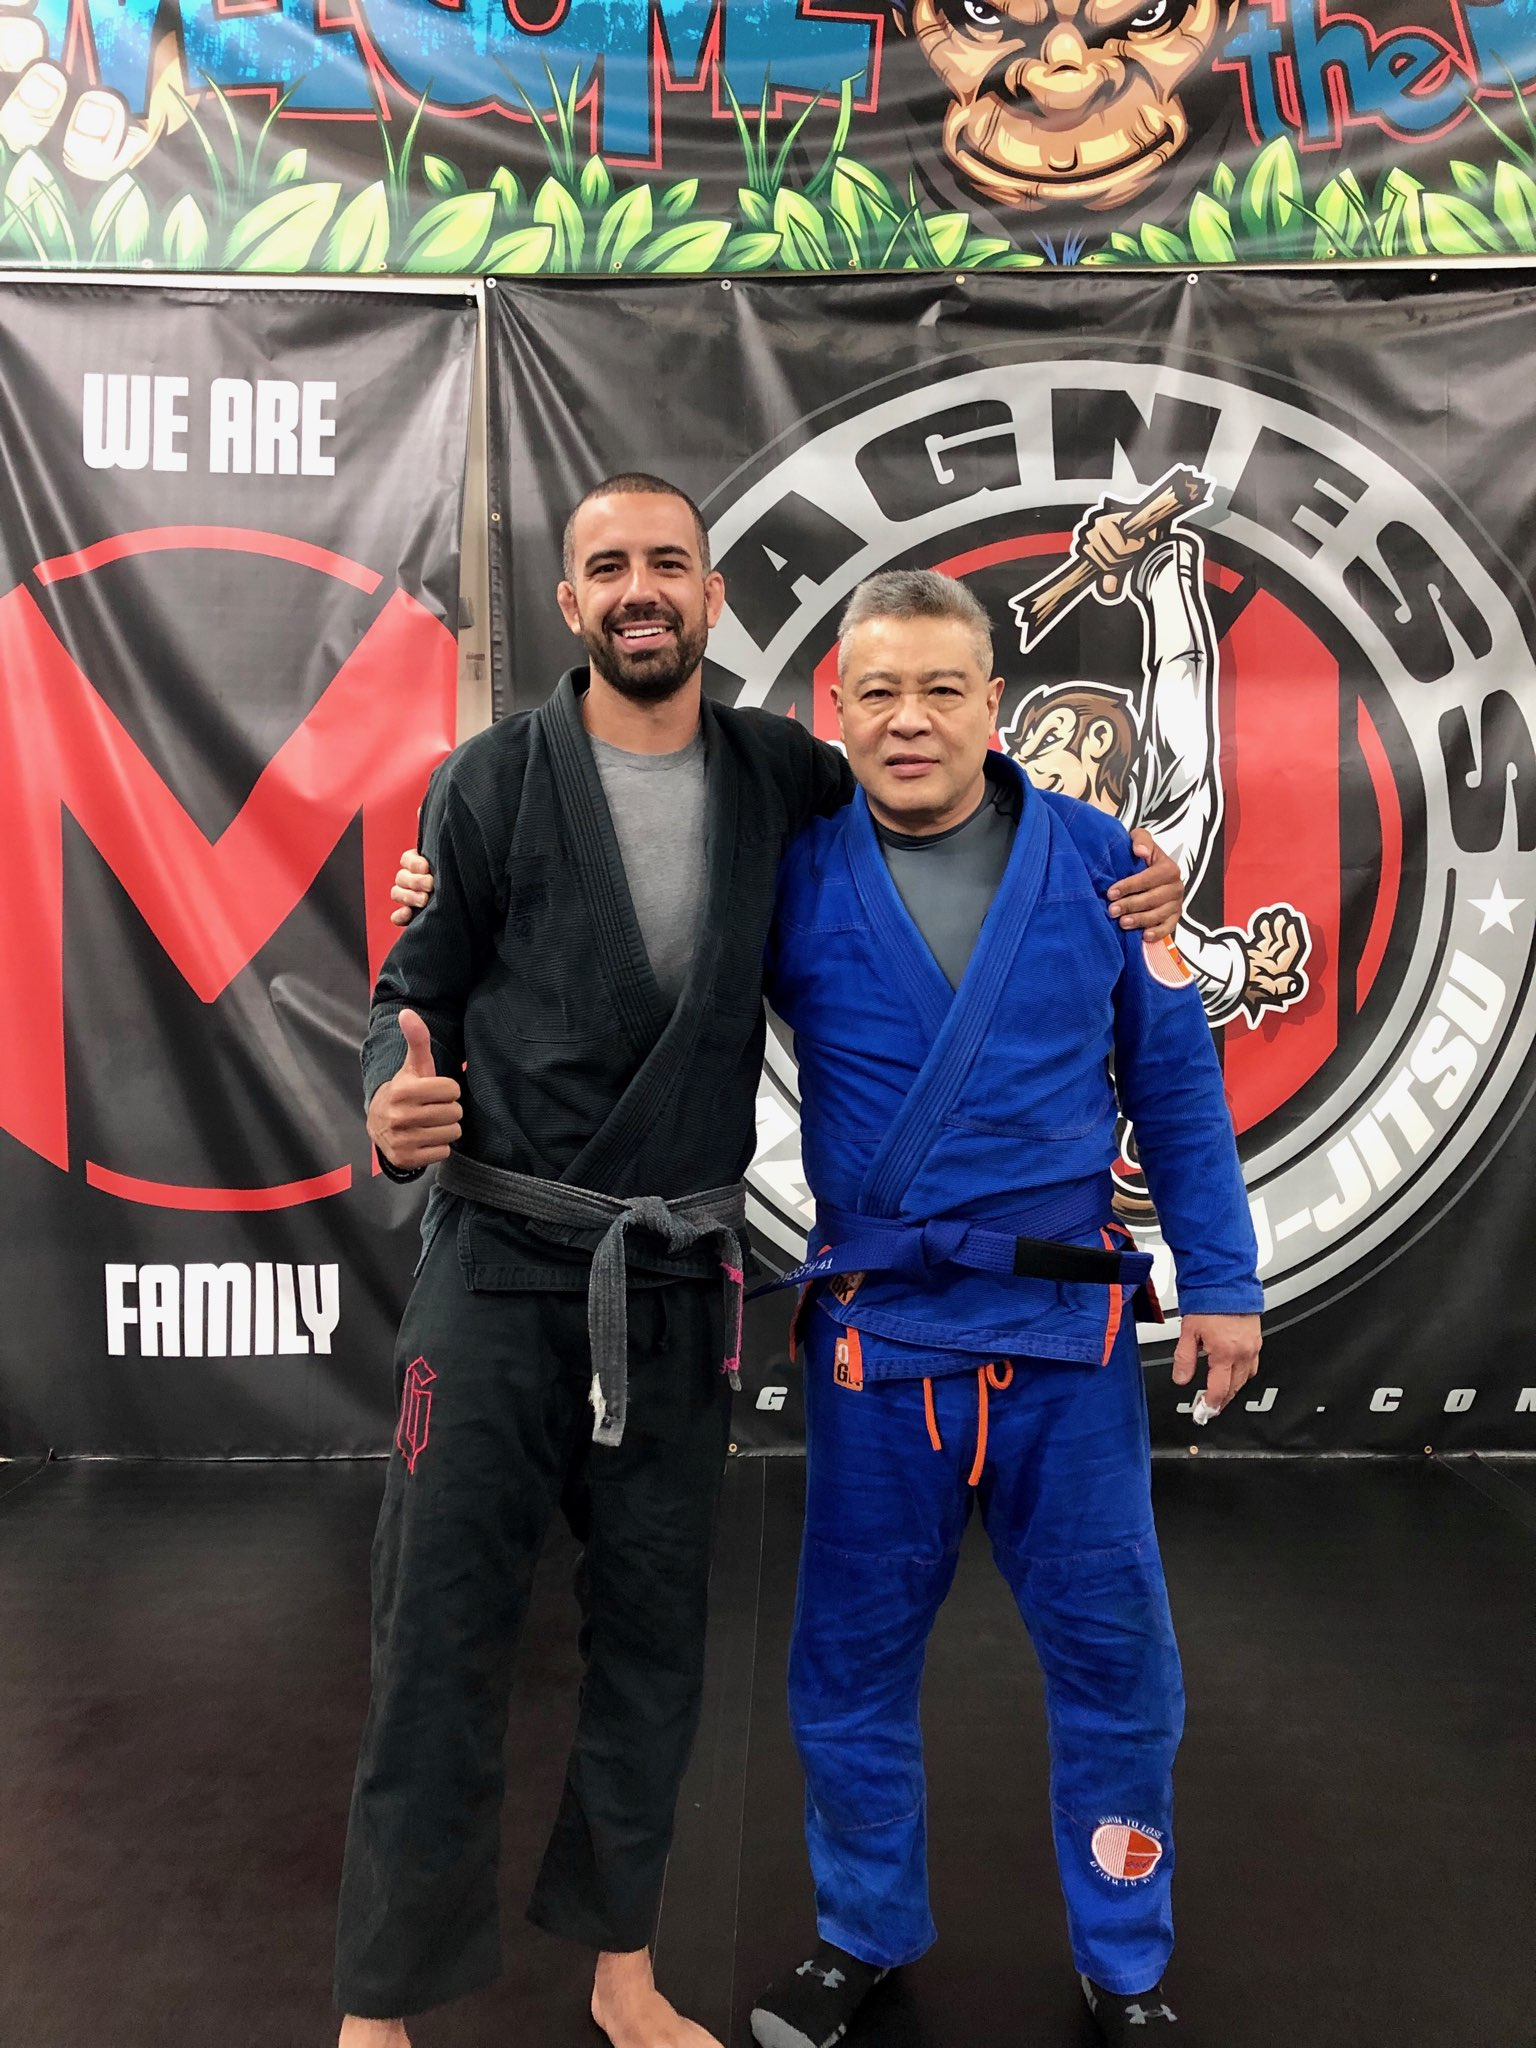 Congratulations to our newest blue belt!